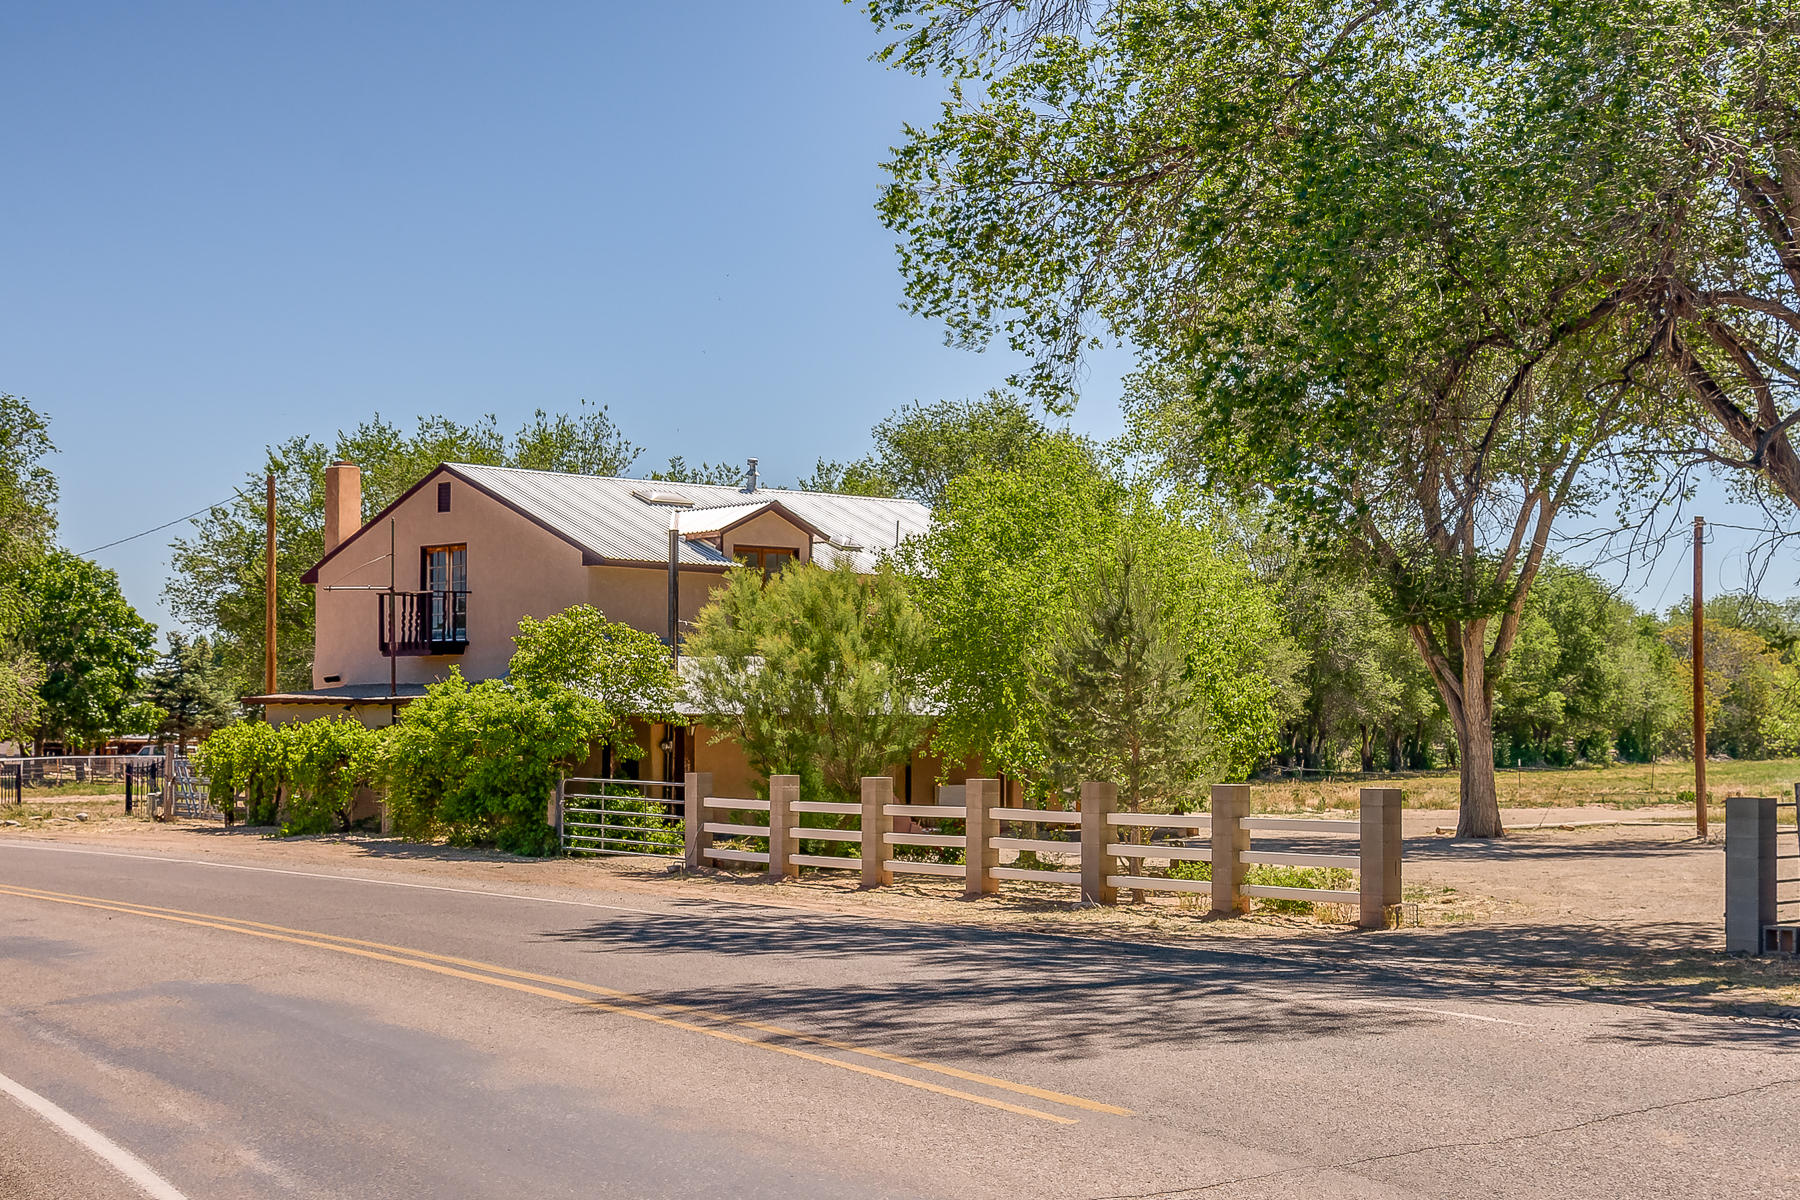 Dreaming of the country life? Look no further! Northern New Mexico style adobe farmhouse on approx. 3.5 ac, detached 2 car garage, RV cover, and carport. A large irrigated alfalfa field could provide feed for your horses, or could be harvested for sale. The home features 2 bedrooms downstairs, and a huge master suite upstairs with a private deck to enjoy the morning sunrises, wood beam ceilings, and newer vinyl windows. Located between Albuquerque & Santa Fe, & close to the up & coming town of Bernalillo -- home to the Range Cafe, Bosque Brewing & the new Riverwalk development @Rio. The home is currently being remodeled, and may not qualify for conventional financing in its current condition. Get this property now before the owner completes the renovation and increases the asking price.